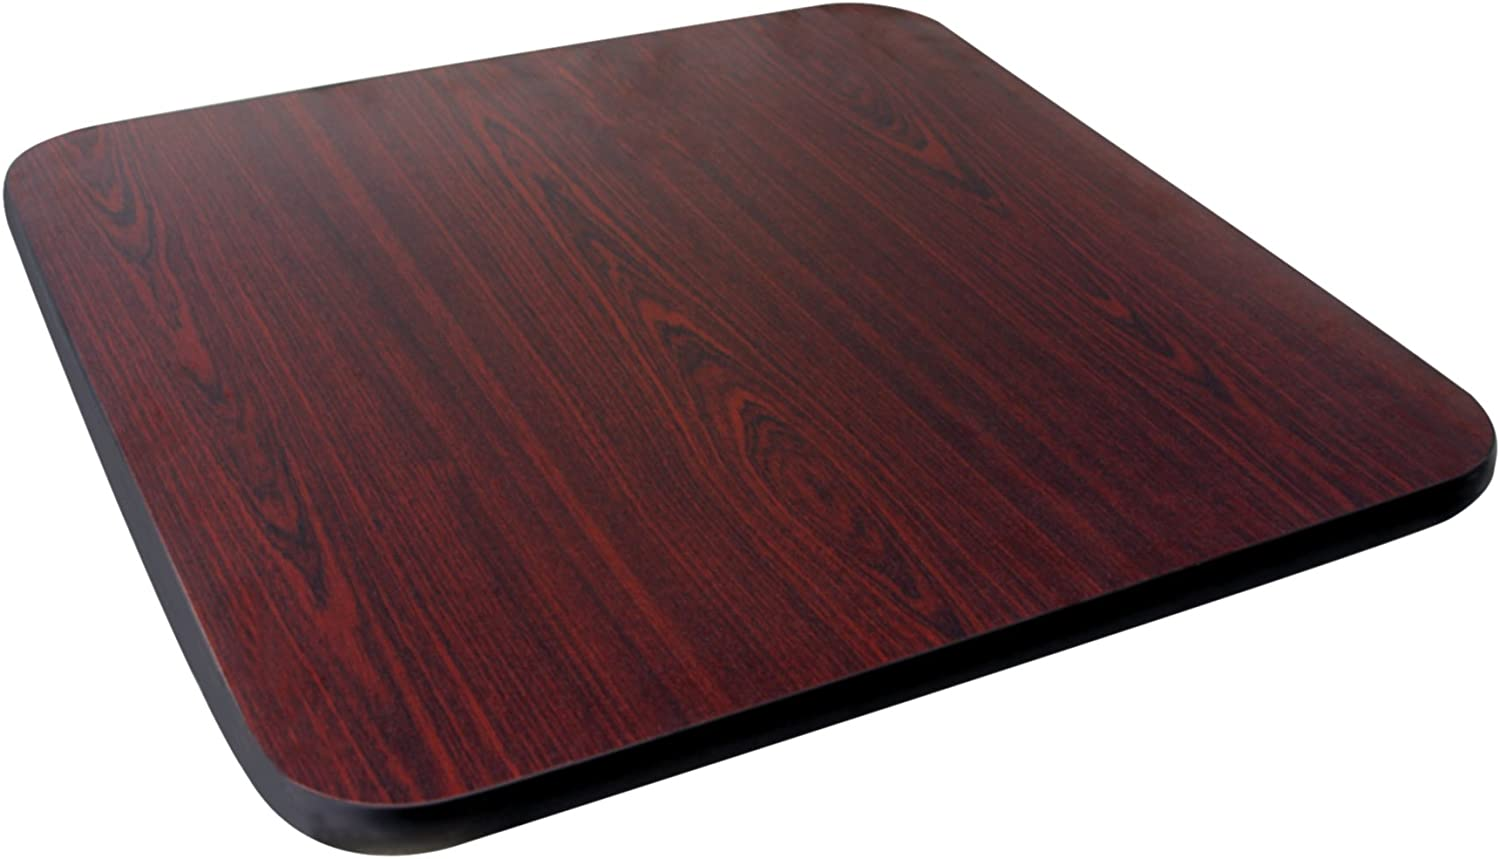 Johnson pink 91223 Table Top, Reversible (Mahogany Black), 24  x 36 , 1  Thick